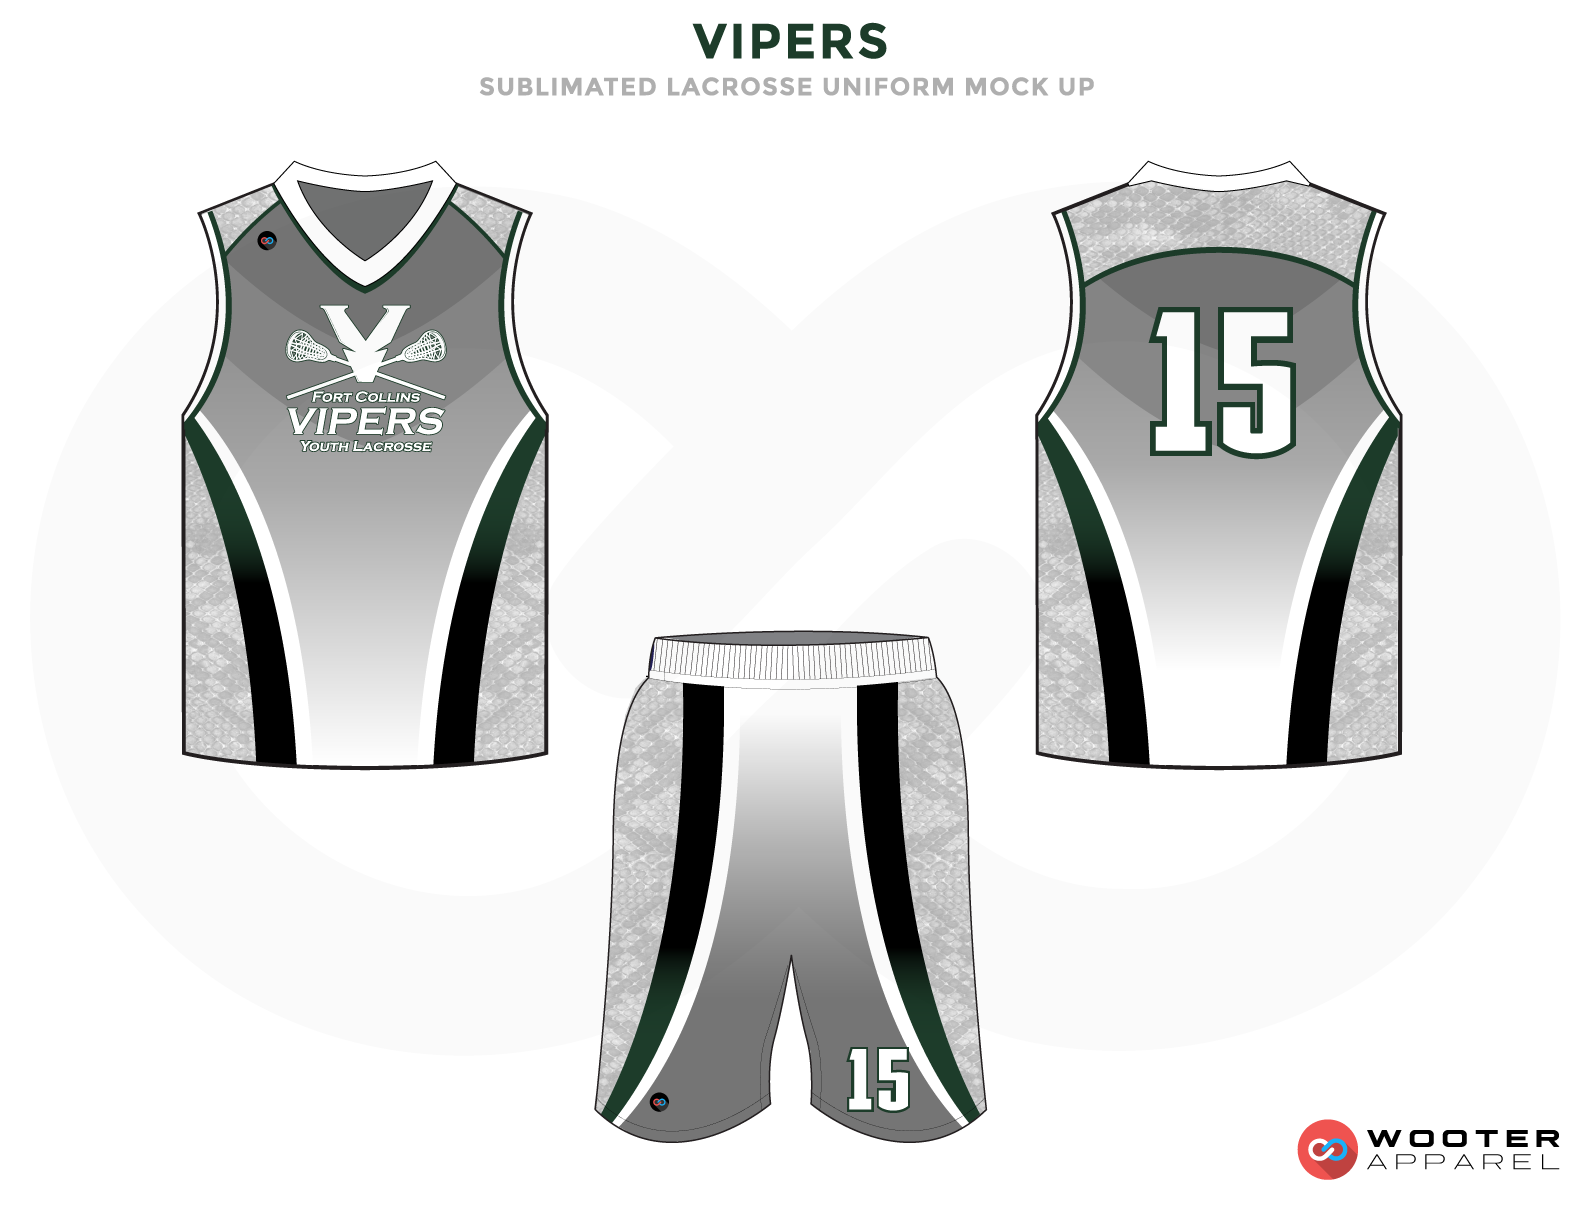 Vipers Grey Black and White Lacrosse Uniforms, Reversible Pinnies, Jerseys, Shorts